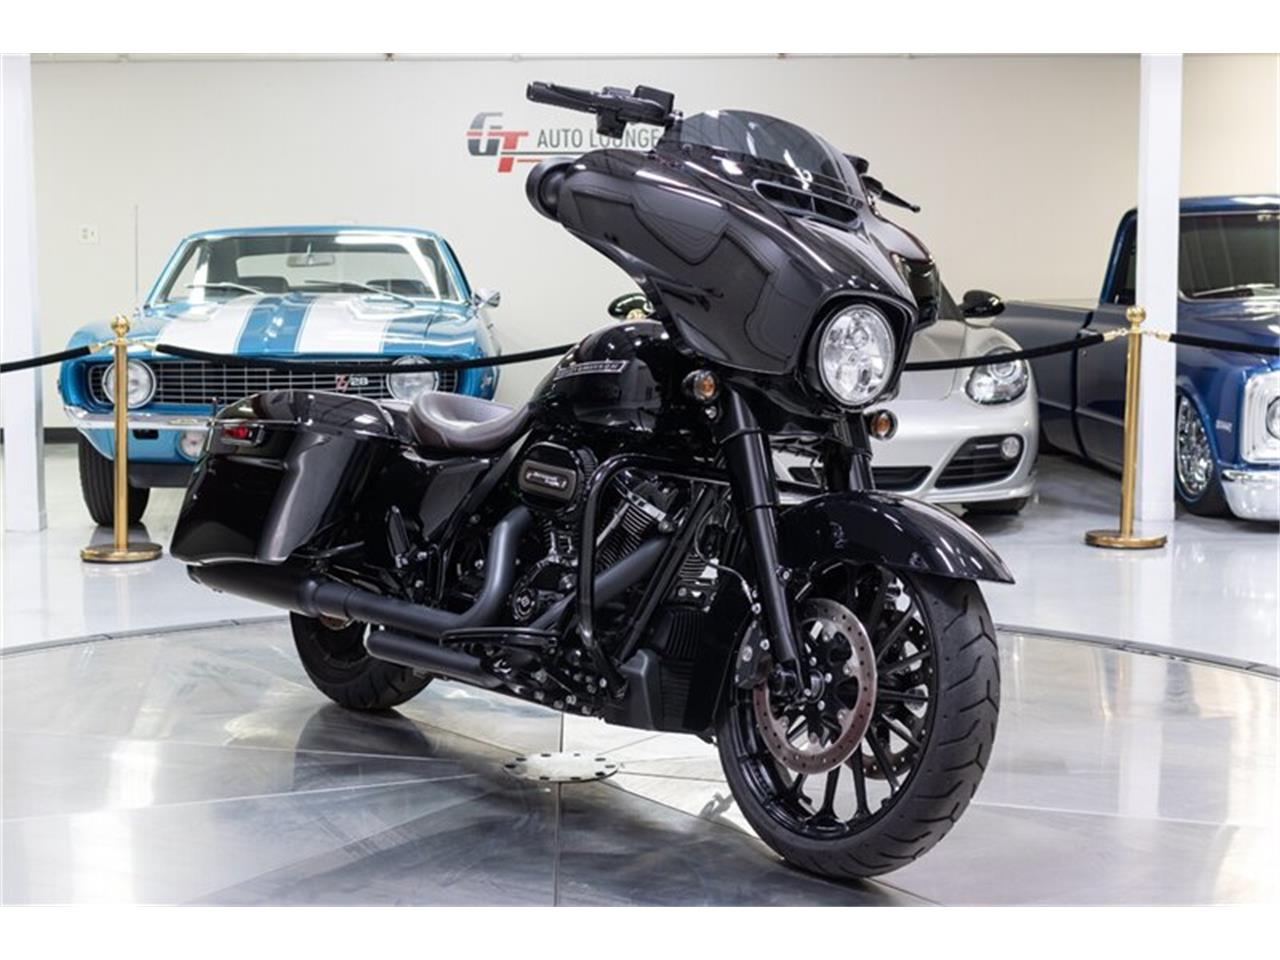 2019 Harley-Davidson Street Glide (CC-1419729) for sale in Rancho Cordova, California